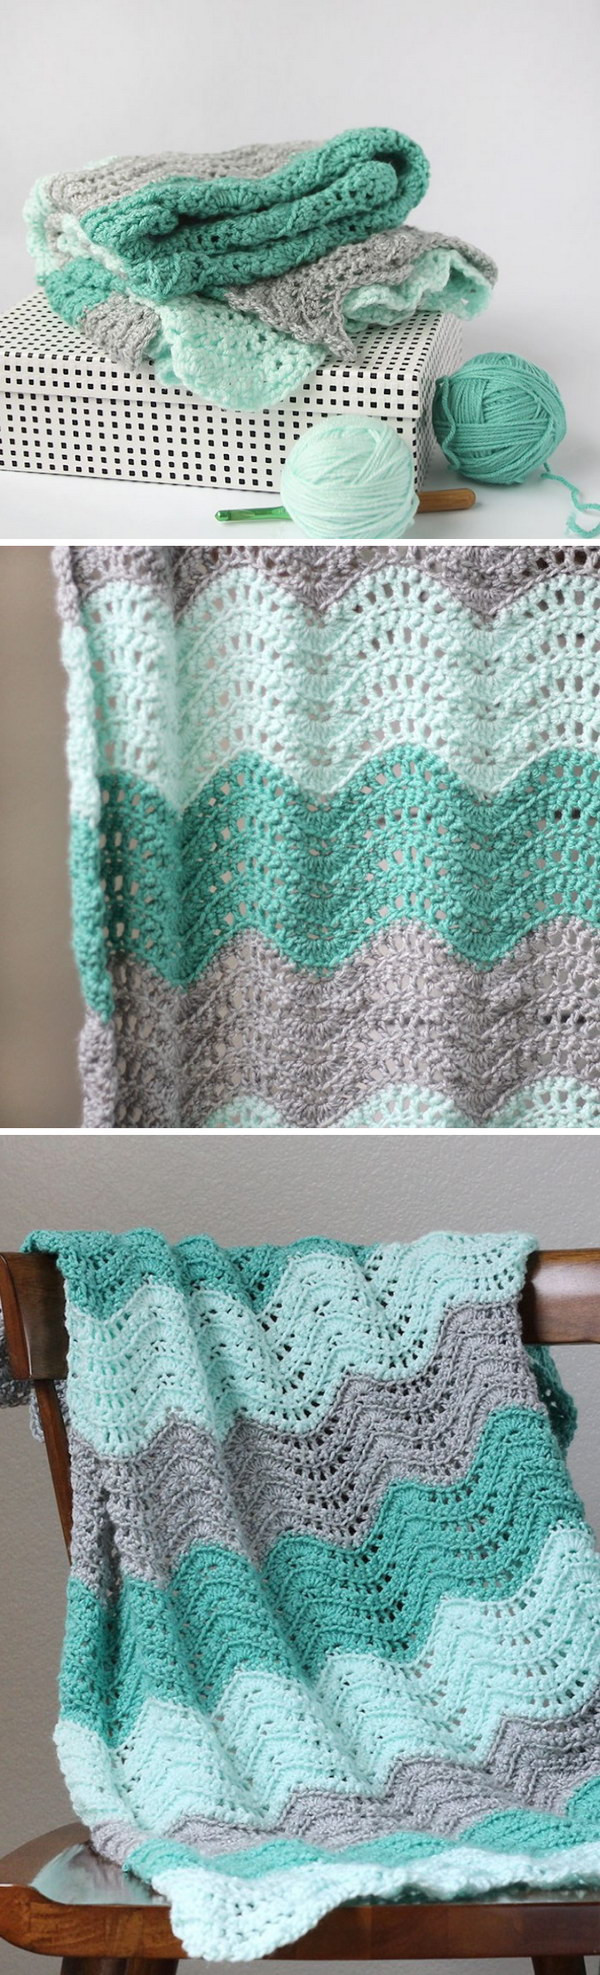 Elegant 20 Free Crochet Blanket Patterns with Lots Of Tutorials Crochet Blanket Tutorial Of New 44 Images Crochet Blanket Tutorial